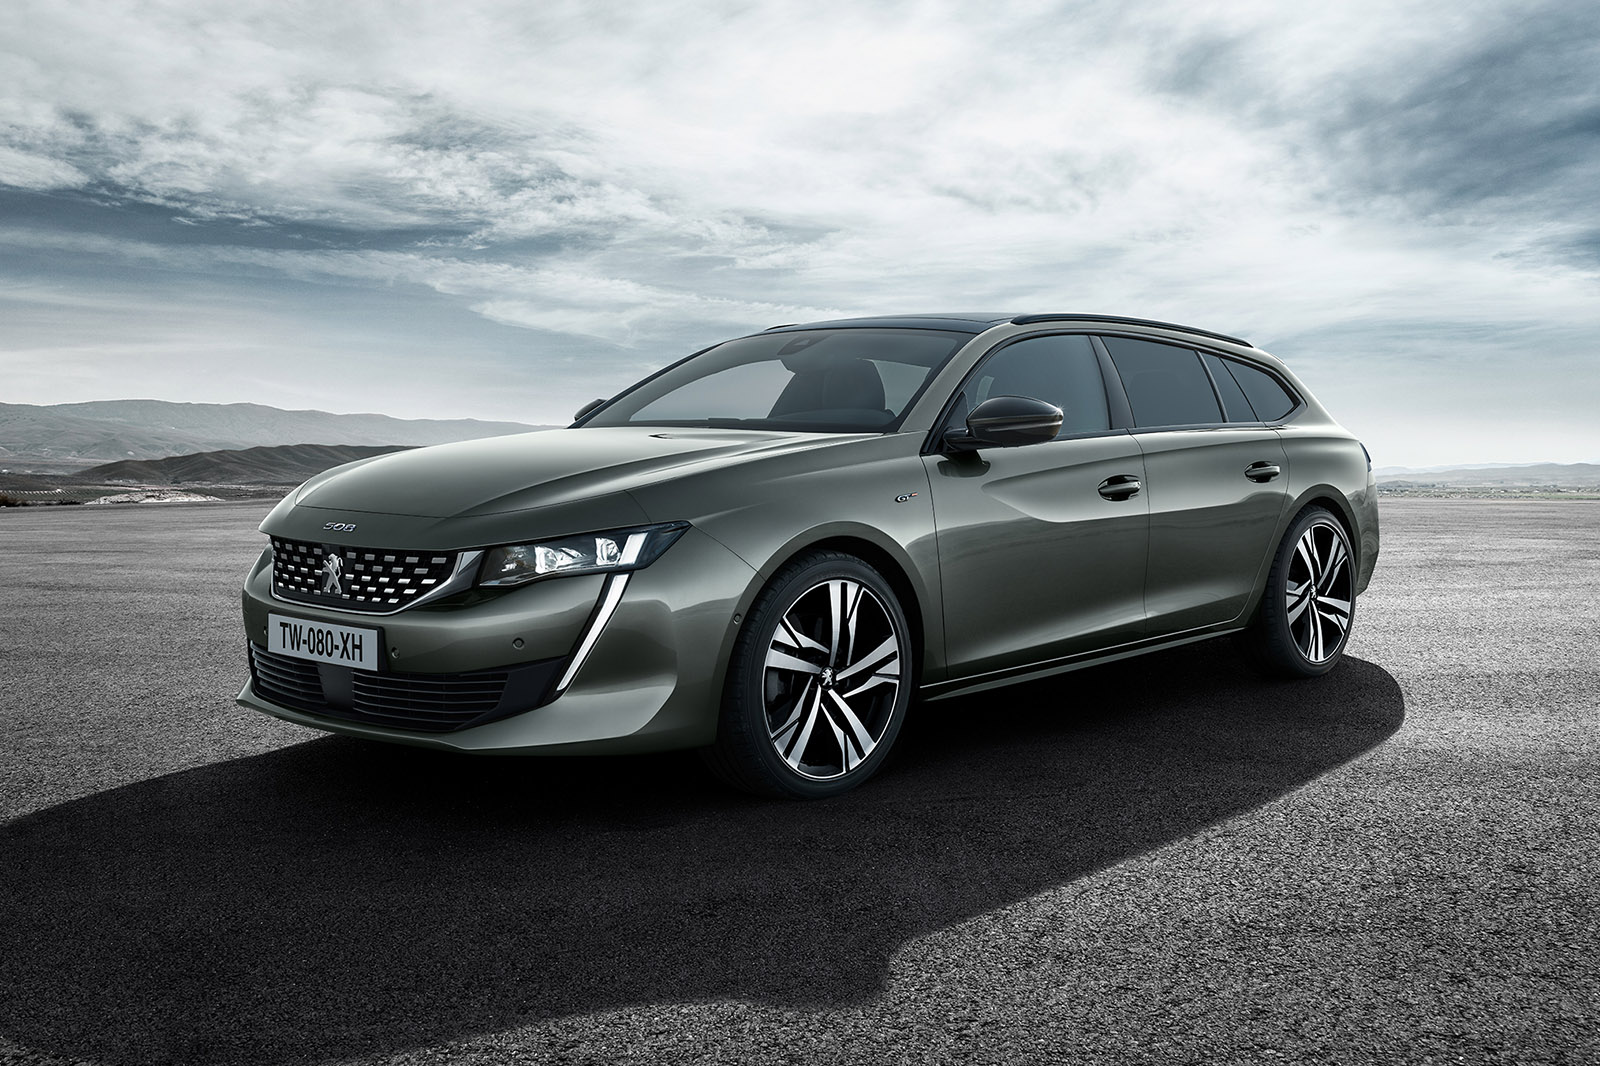 nouvelle peugeot 508 sw elle sort du lot avec ses. Black Bedroom Furniture Sets. Home Design Ideas